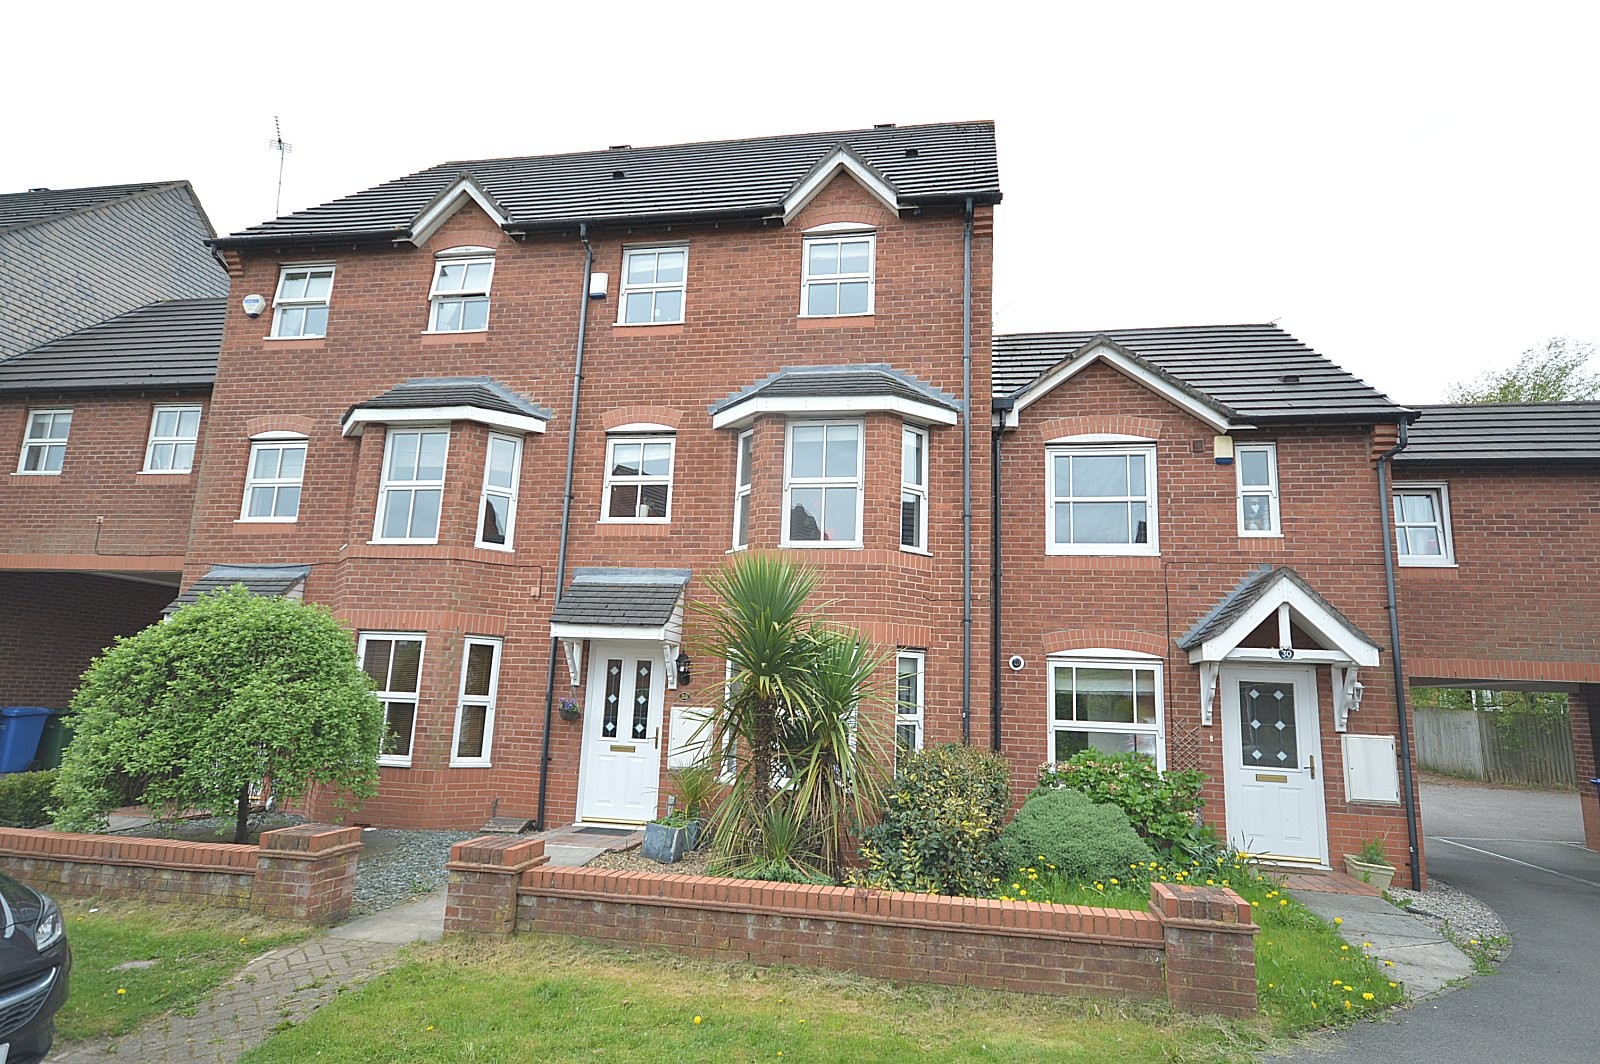 Lady Acre Close, Lymm